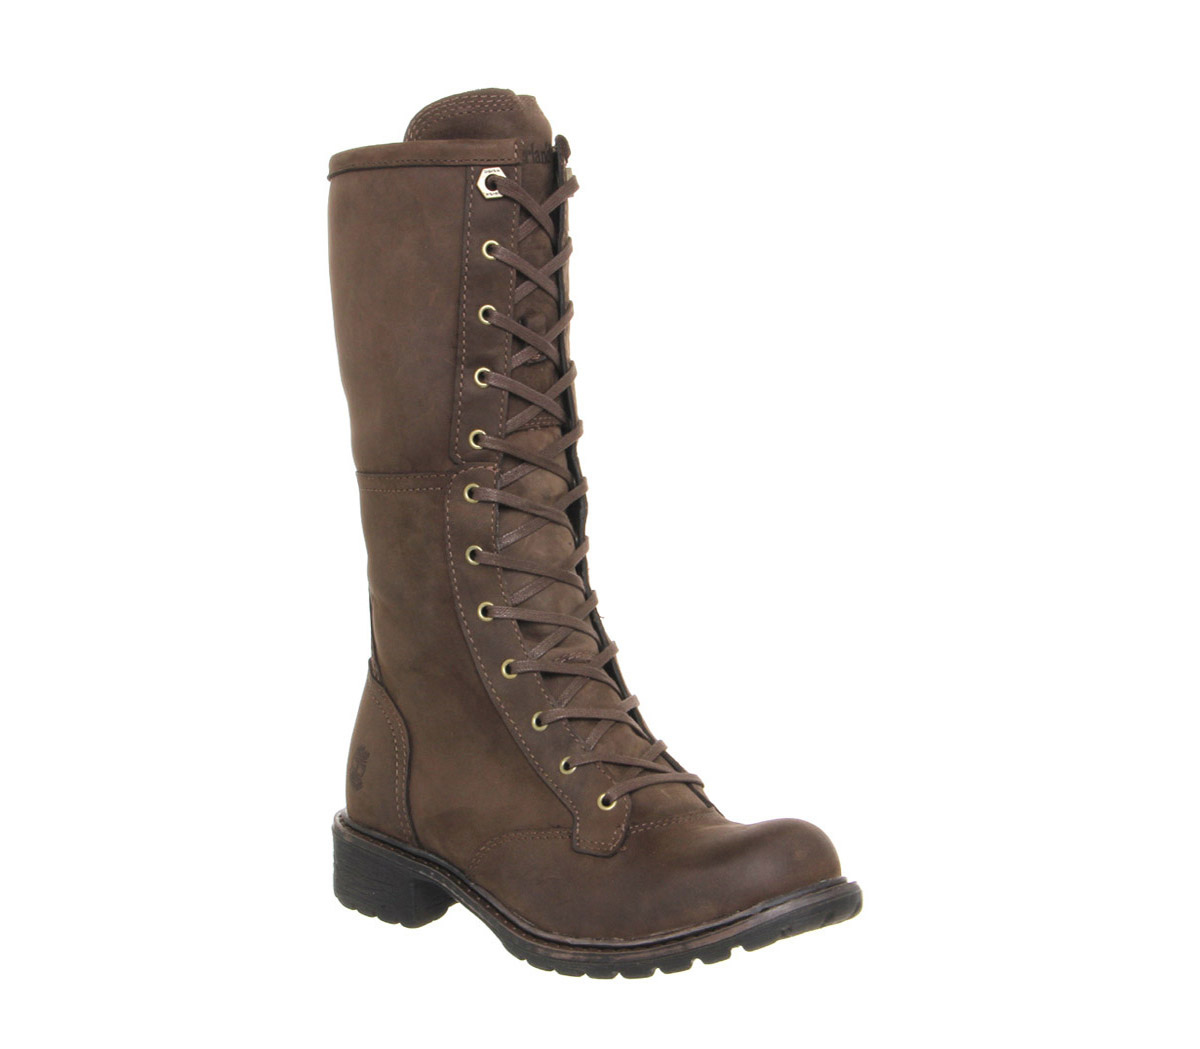 Timberland Stoddard Mid Lace Boots in Brown